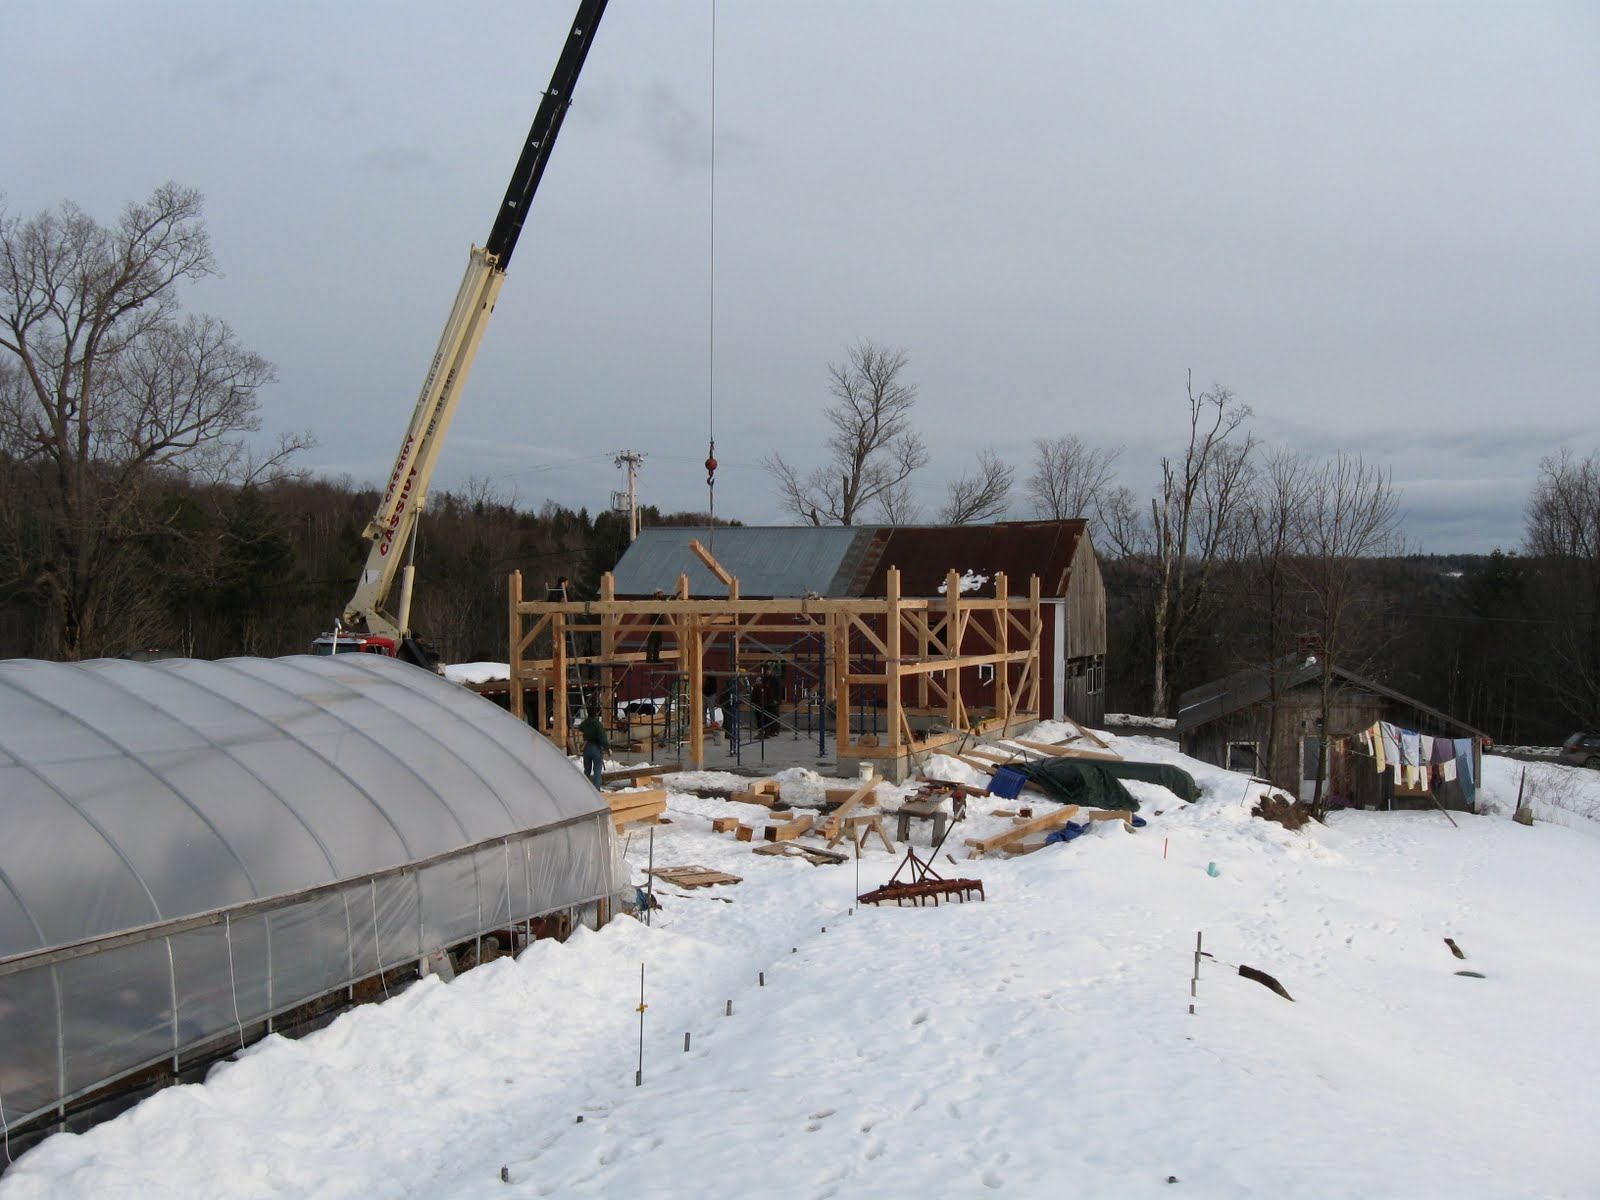 Floor joists are flown into place before the plates are added.